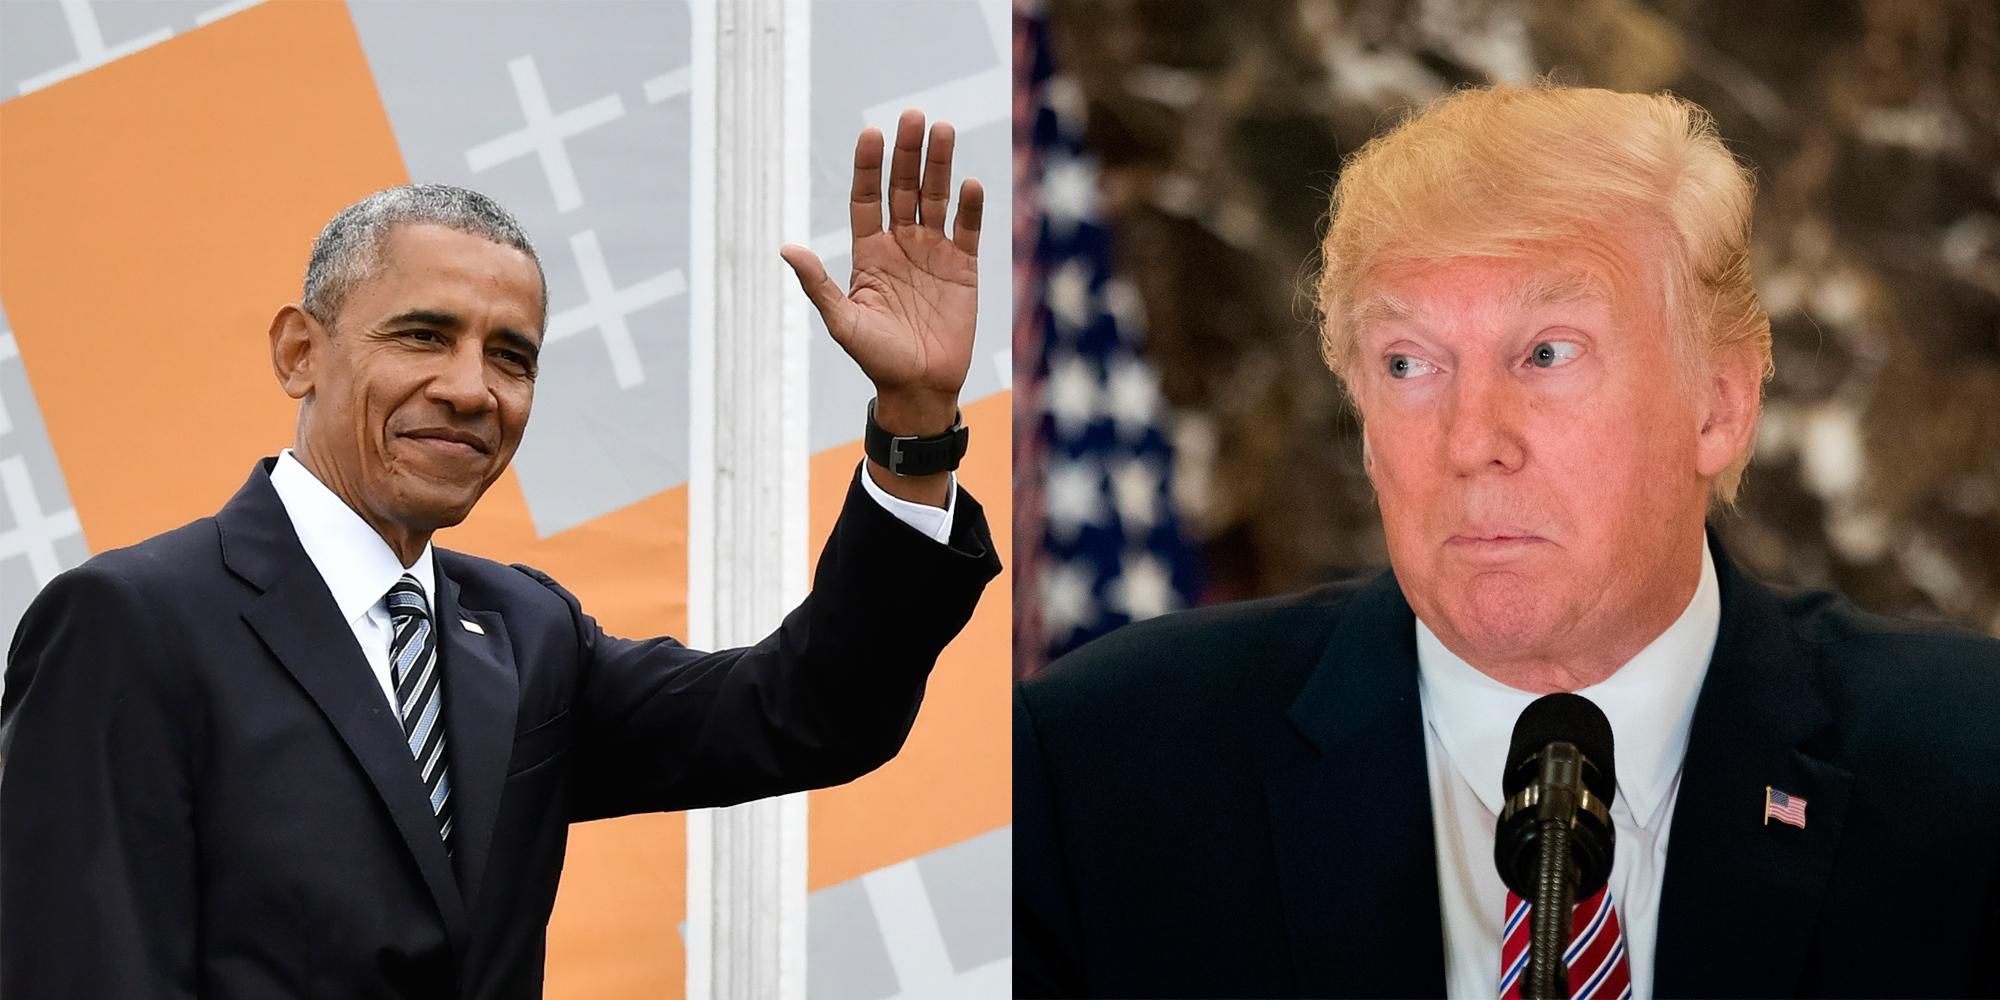 The surprising thing that Trump and Obama have in common | The ...